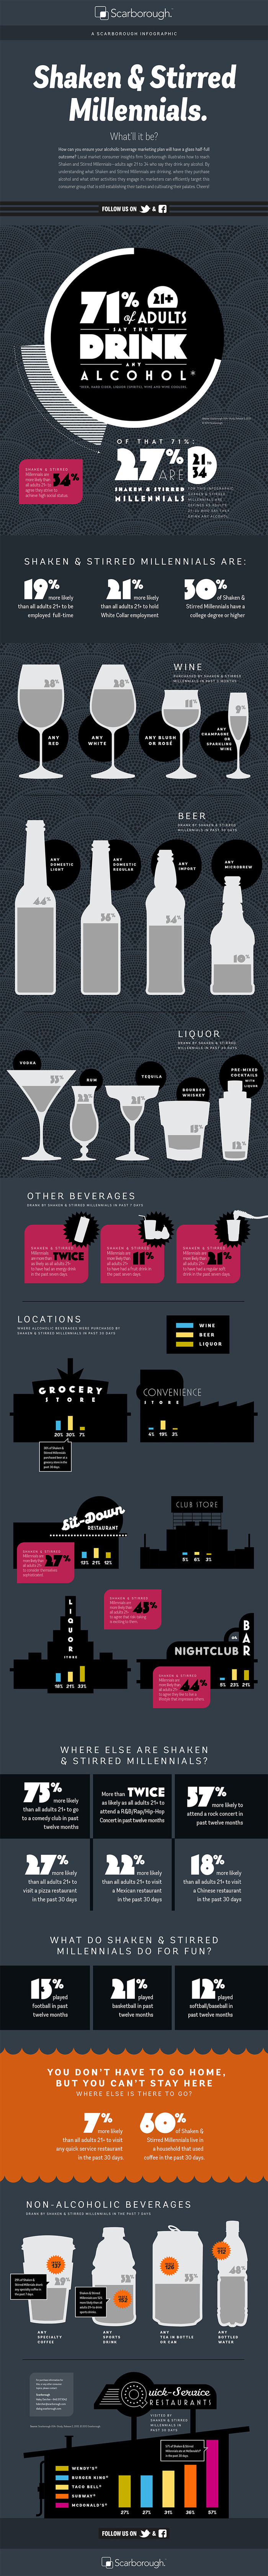 Scarborough Infographic: Shaken & Stirred Millennials